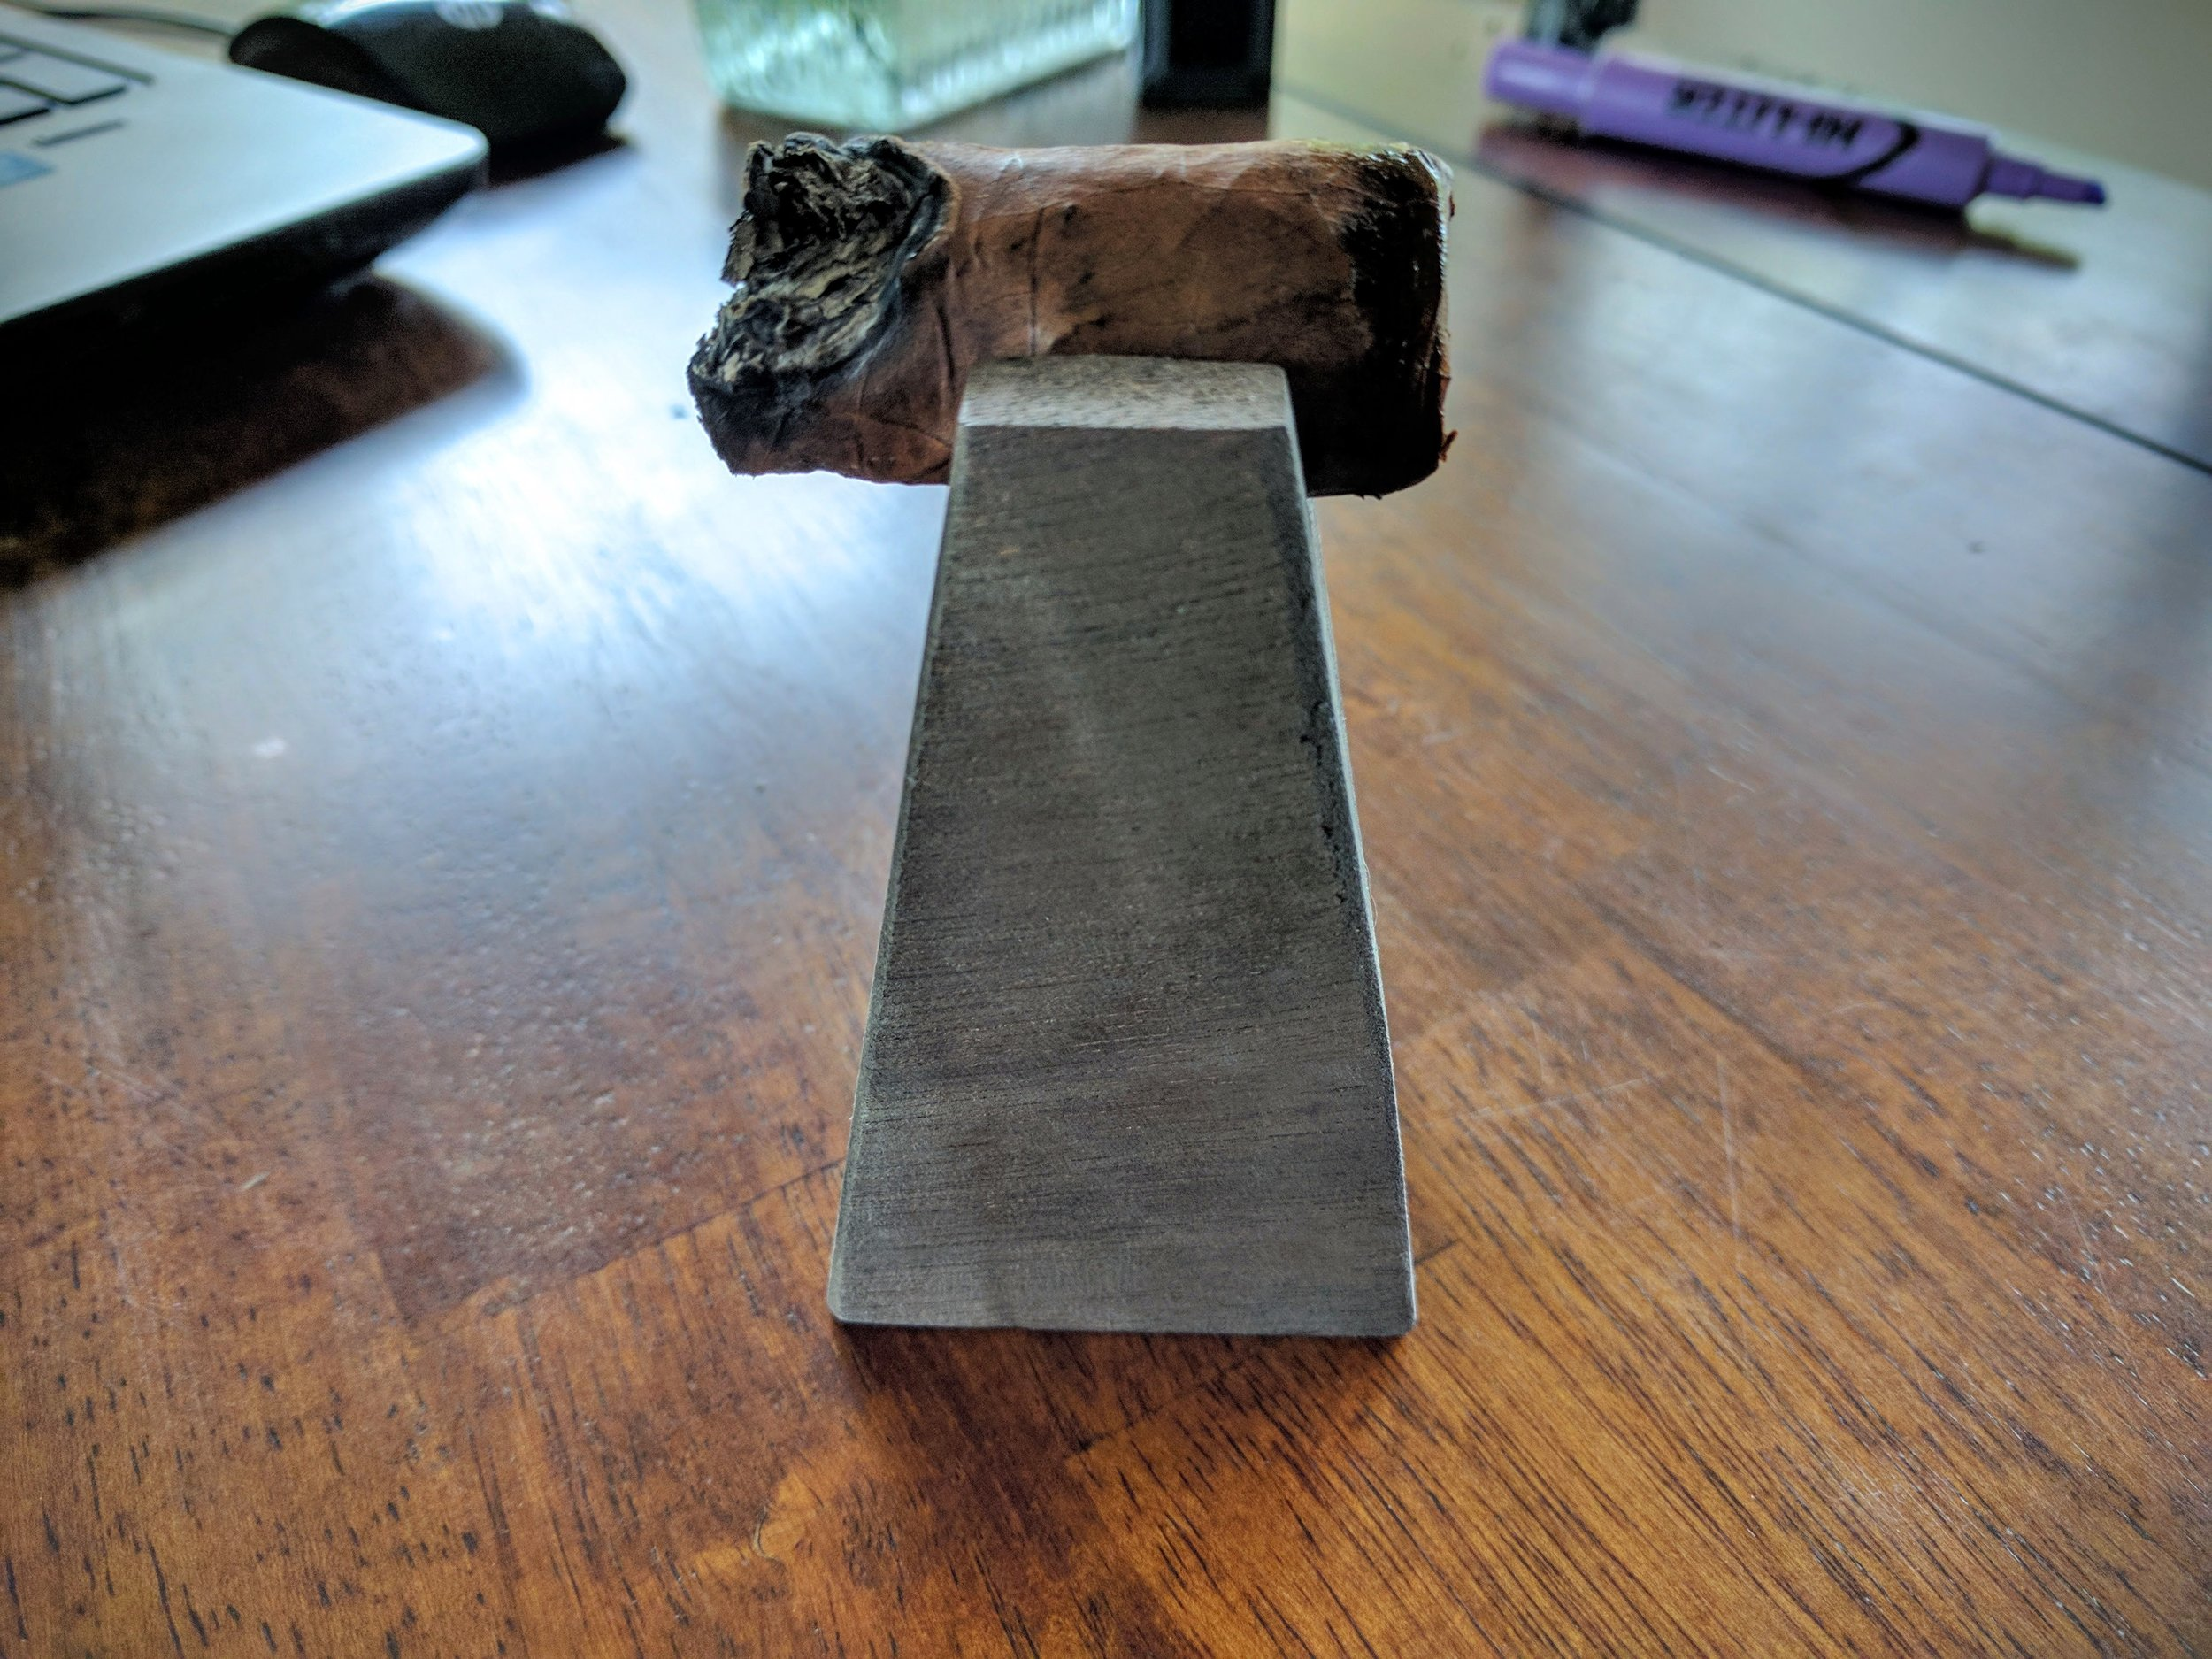 good but exaggeratted  7.9/ 10.0 - Cigar Fed's site hypes this cigar quite a bit – saying it comes from the same factory producing $50 a stick smokes and in Vegas you'd pay 10x what's it's listed for on the website. I mean, $50 a stick is very elite company and I just don't ever see this cigar being a $50 cigar. What it is for certain is a $5 to $10 cigar – and it delivers at that price-point fantastically. The flavors are interesting but singular and non-evolving. It's kinda one-note, but in a pleasant way. All-in-all, really good smoke – $50? Hell no. $10? sure, why not?